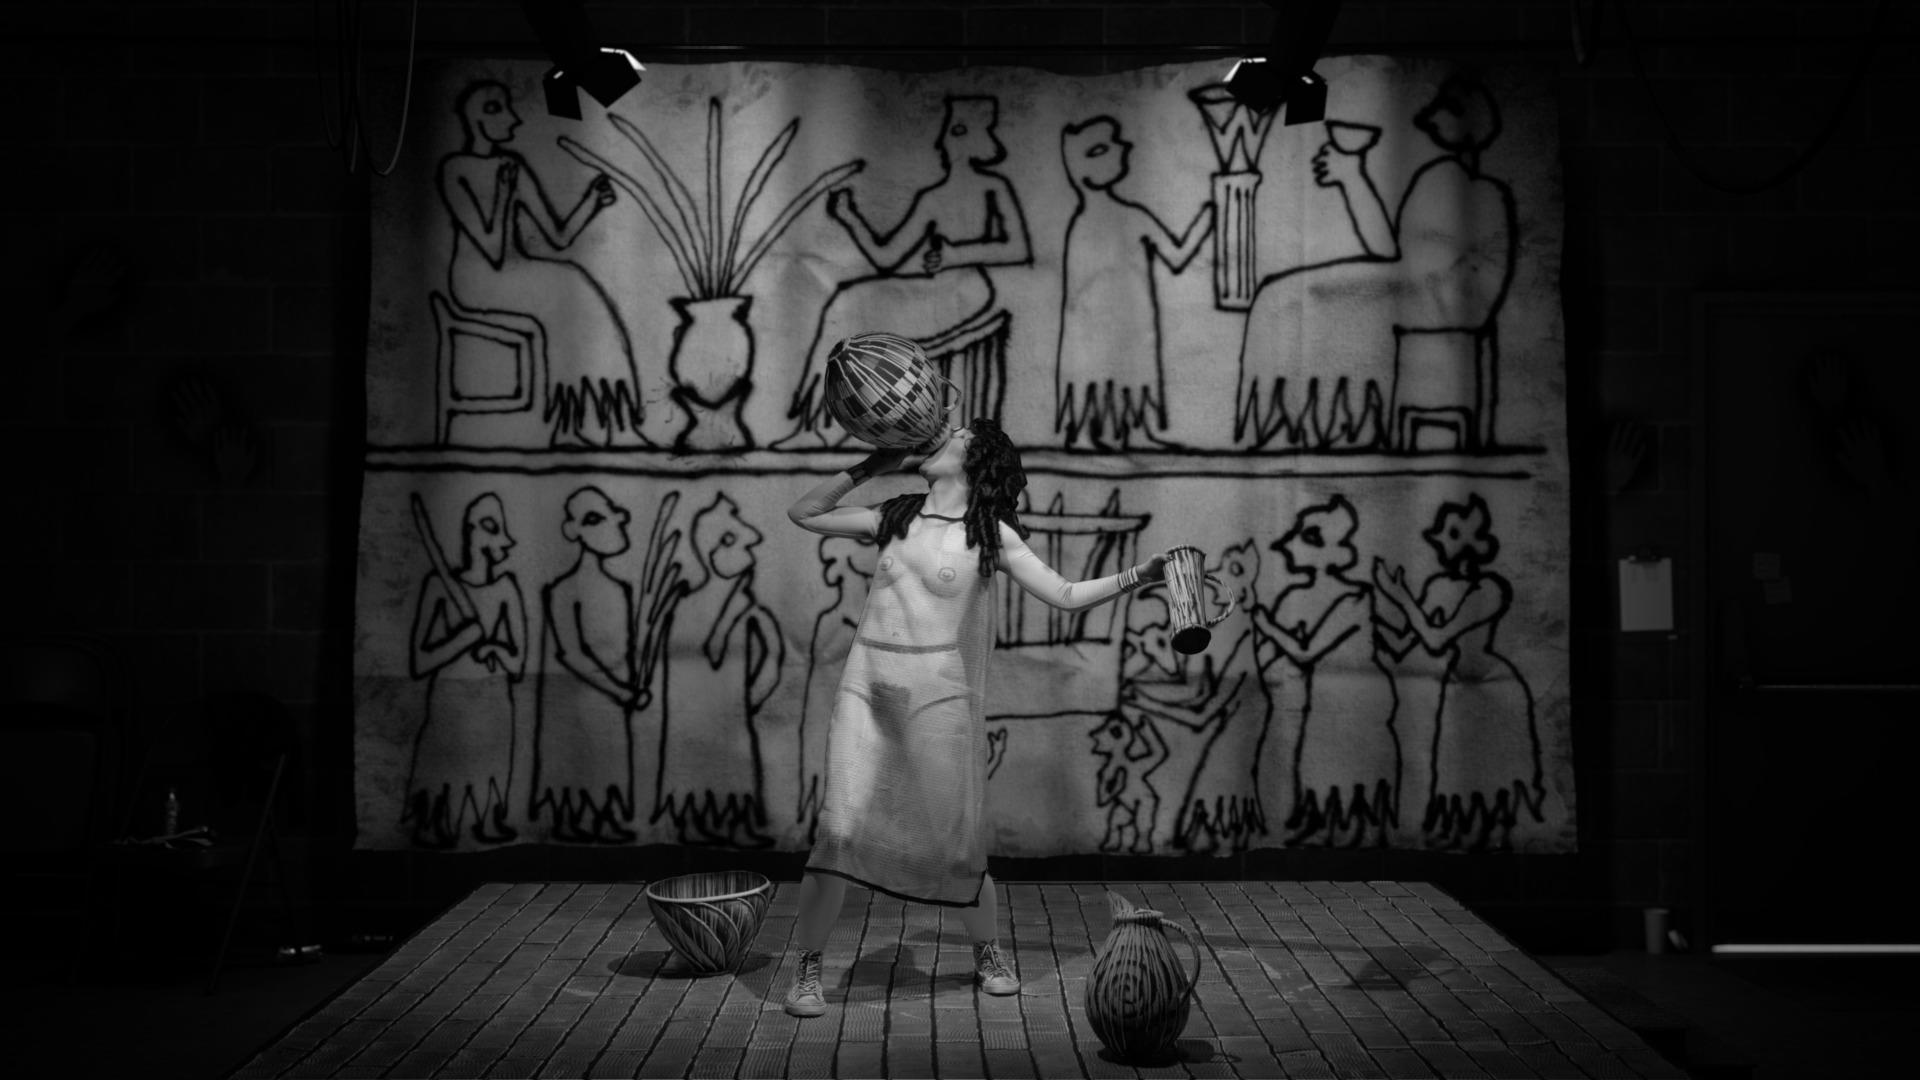 A clip from The Rape of Europa film with a woman drinking from a woven basket.